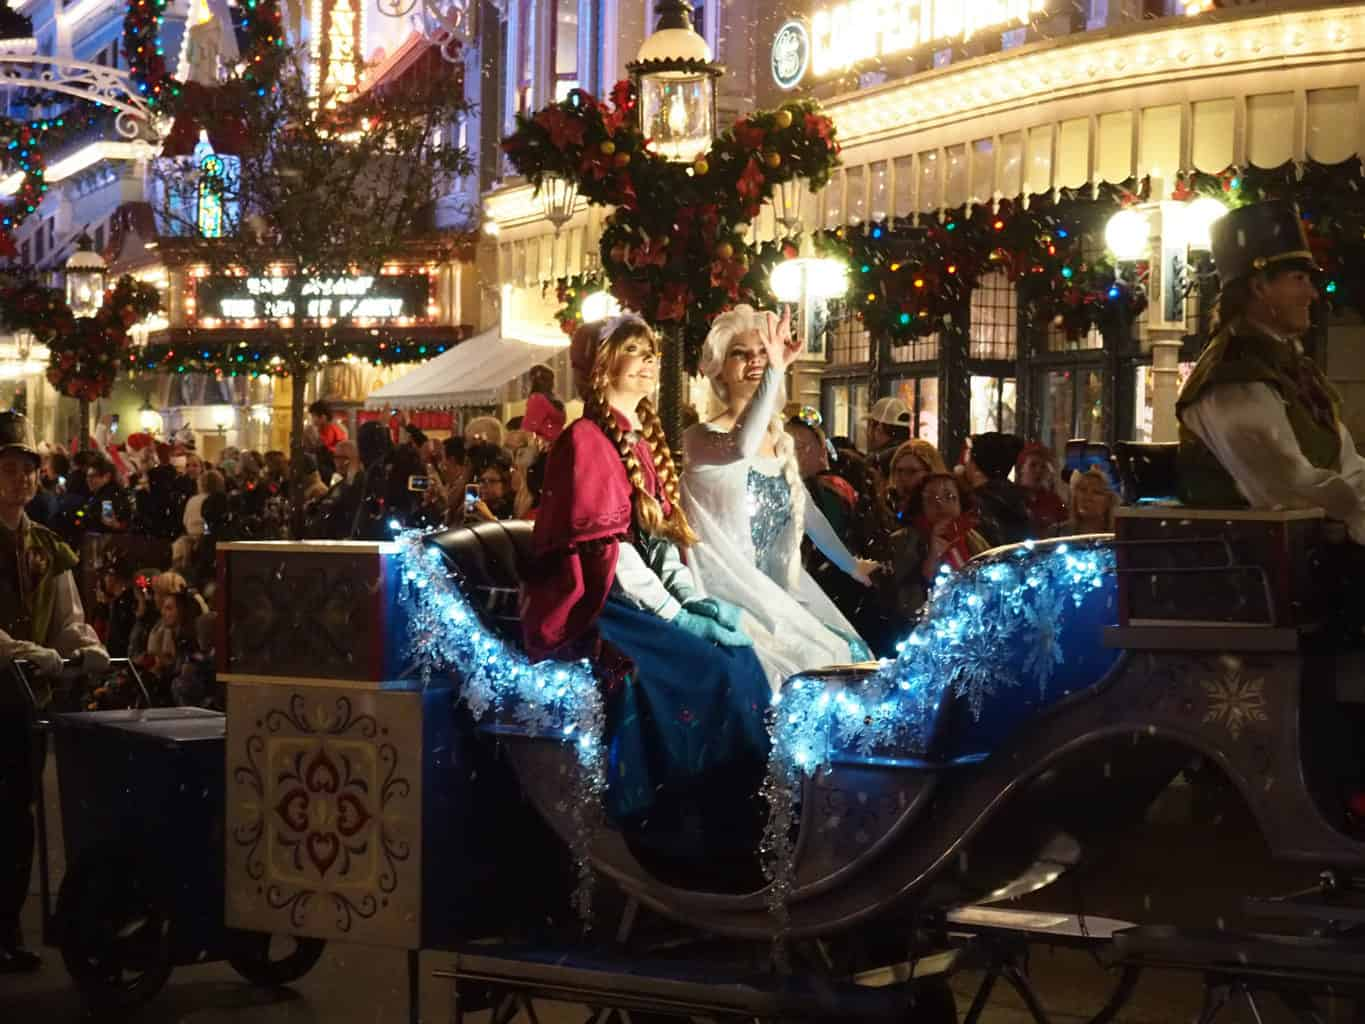 Disney Christmas Parade: A Photo Tour